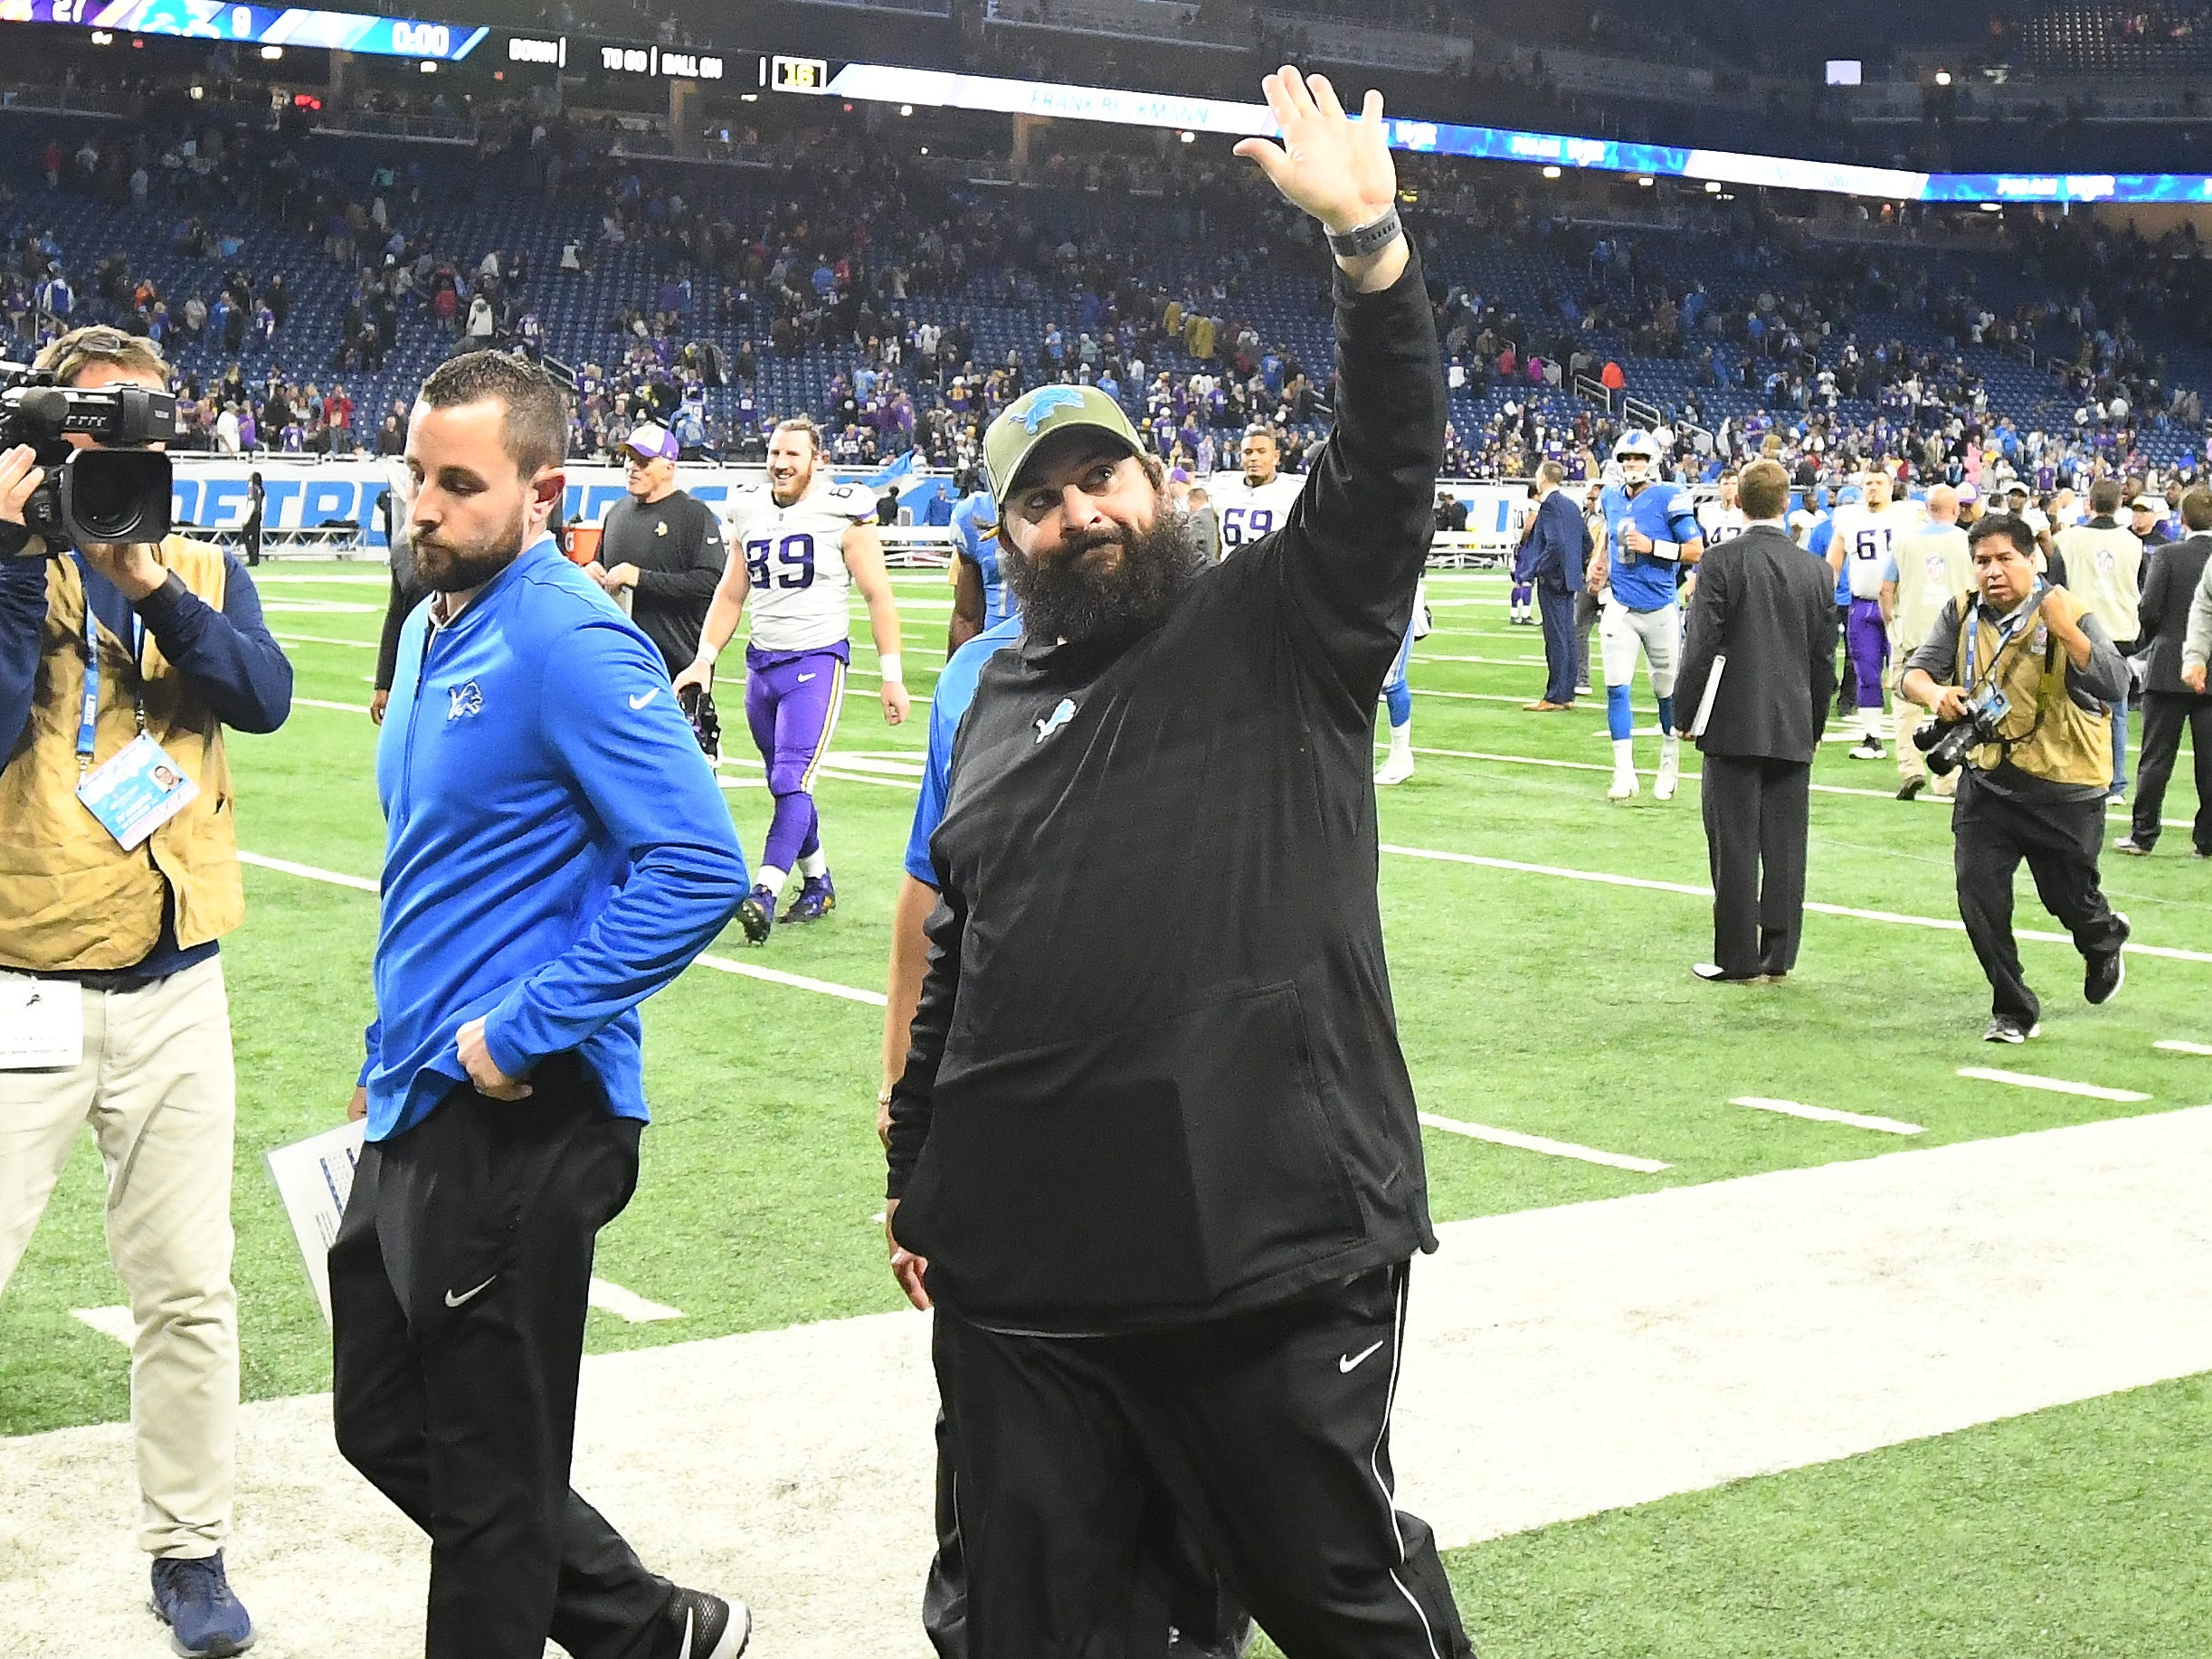 Lions head coach Matt Patricia walks off the field, waving up to the stands, as he does after every game, after losing to the Vikings 27-9.